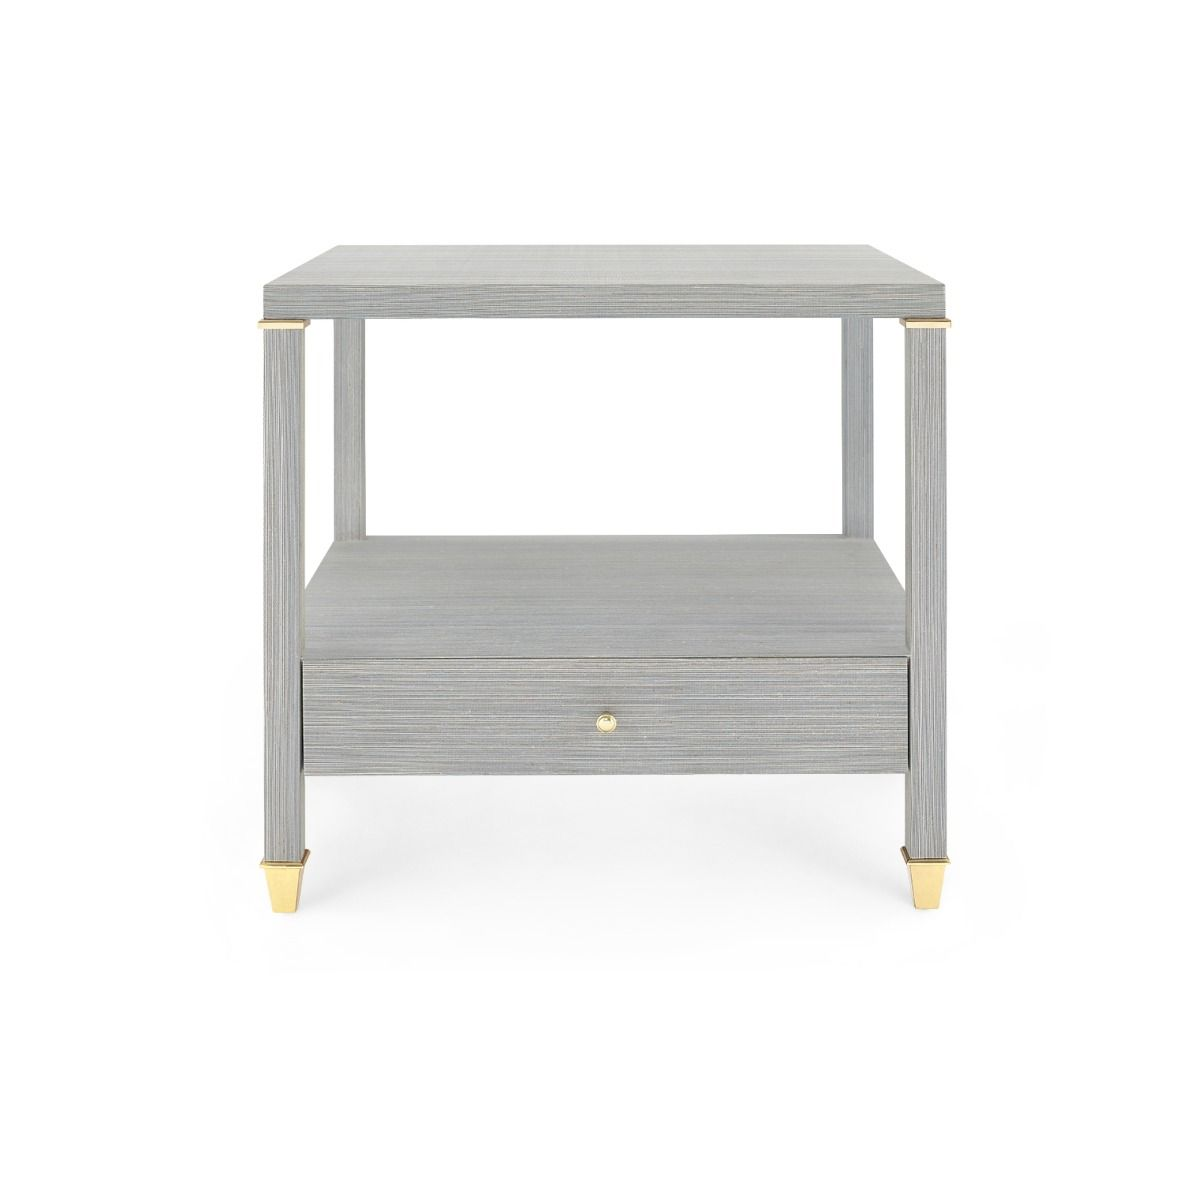 Bungalow 5 - PASCAL 1-DRAWER SIDE TABLE, SLATE BLUE